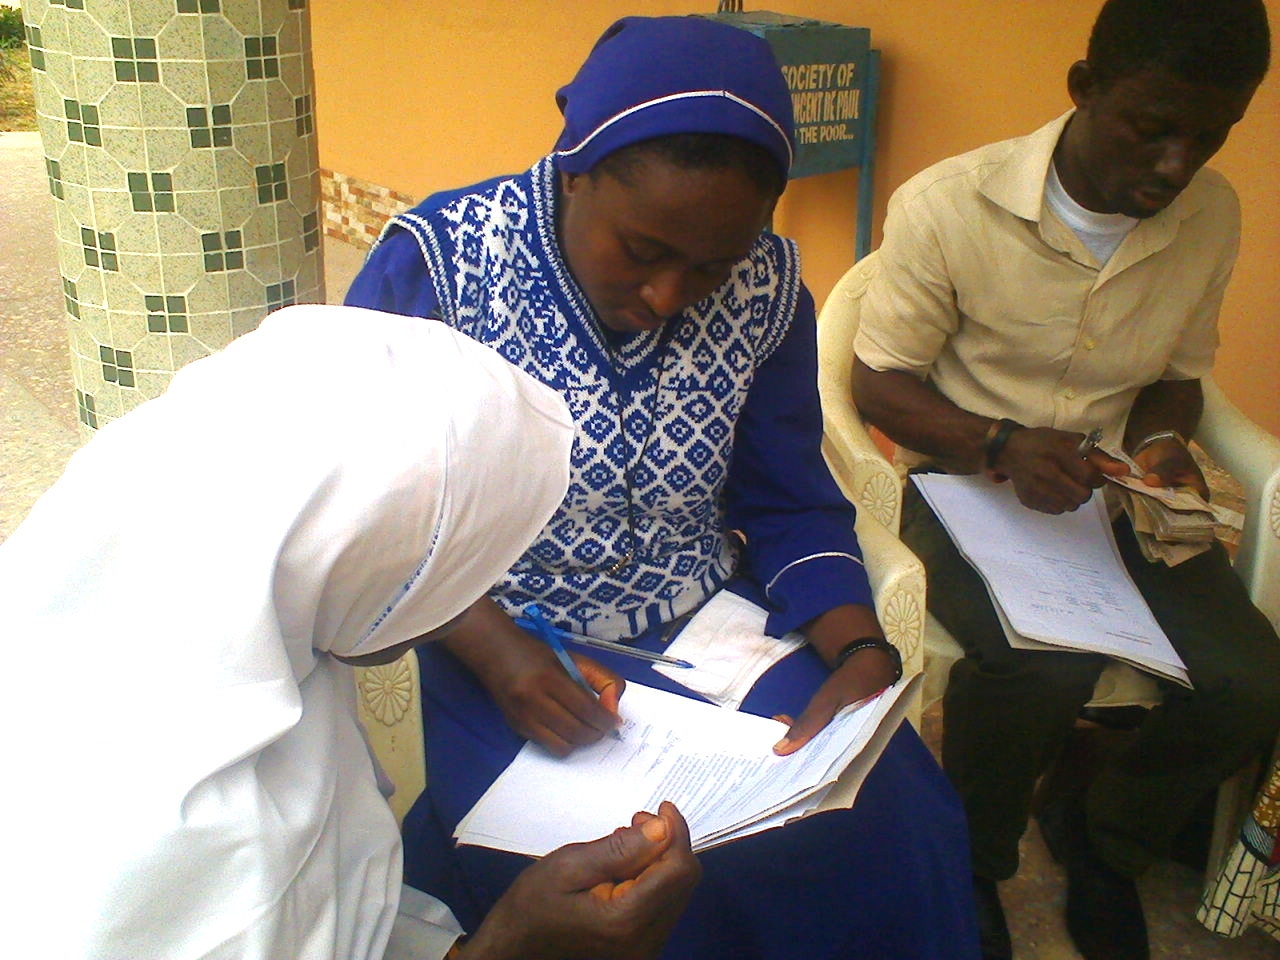 A young muslim woman receives her loan. While Anawim is a Catholic organization, they do not discriminate with regard to whom they offer assistance.